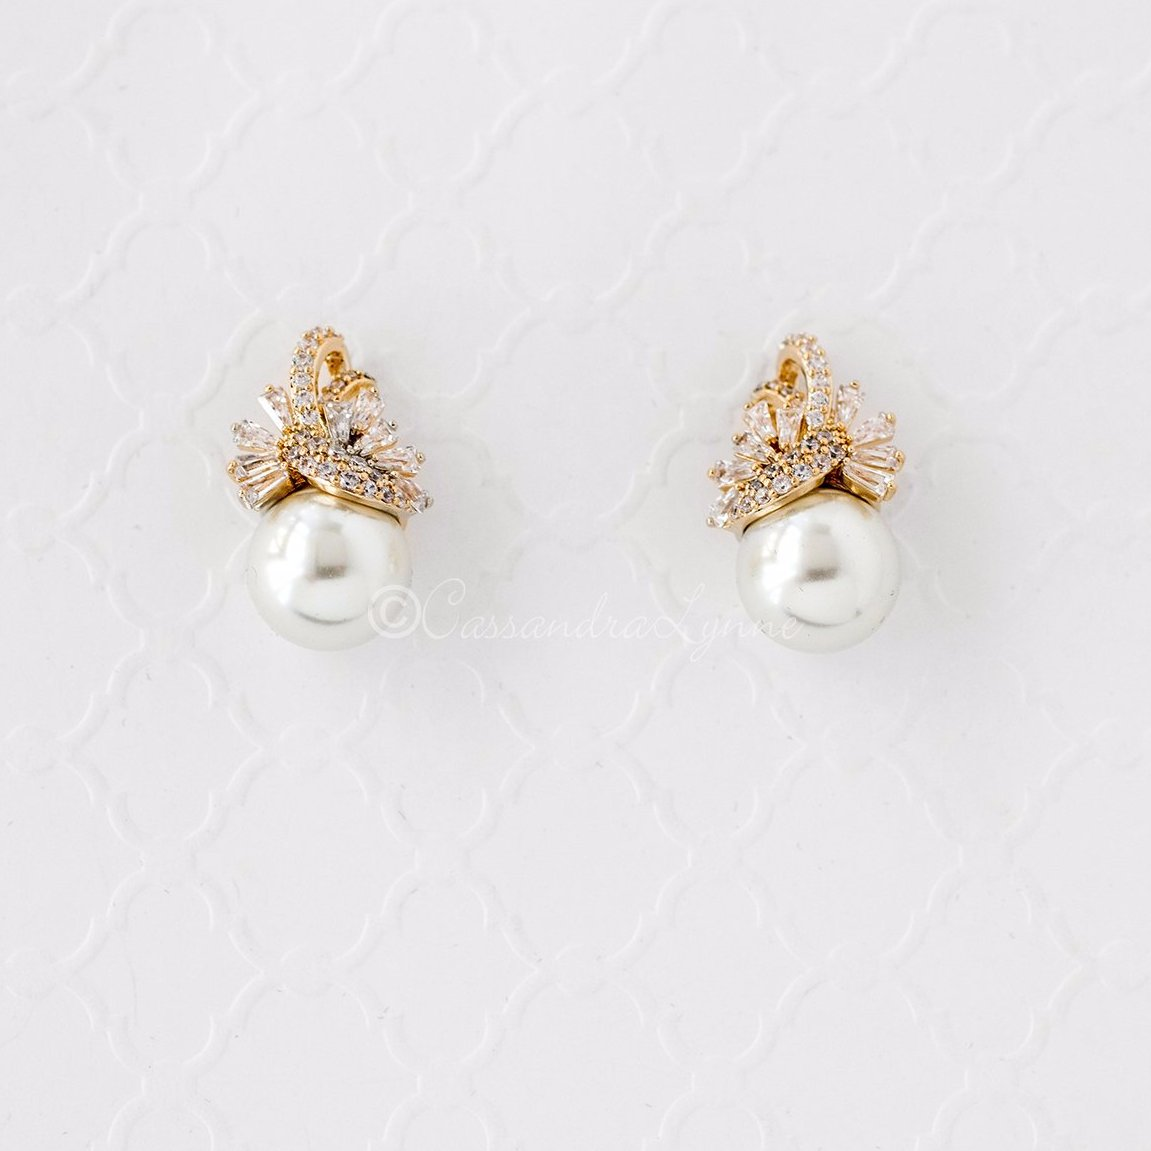 Vintage Pearl and CZ Wedding Jewelry Studs Gold